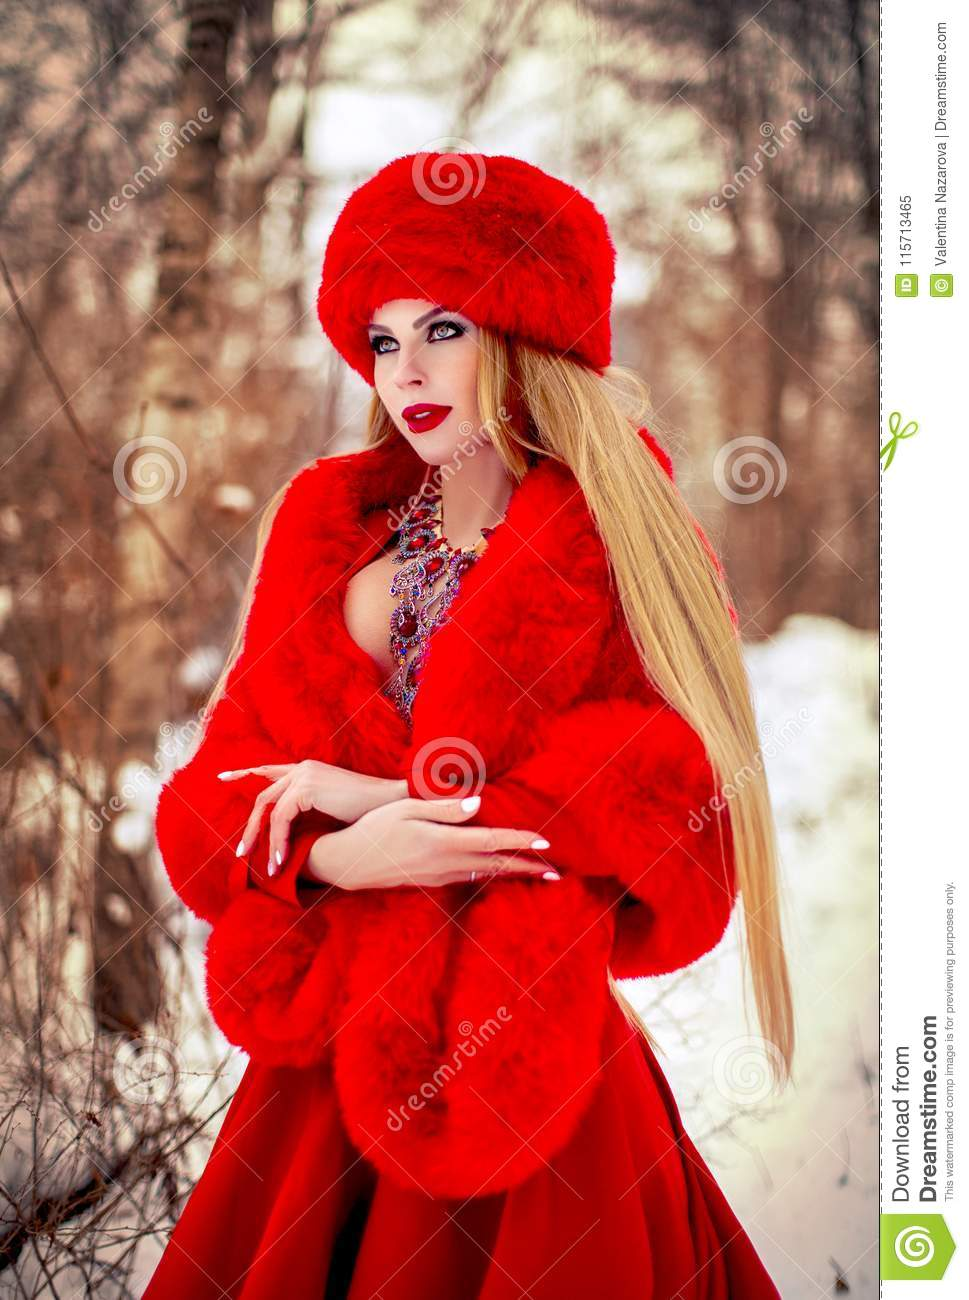 c80c64edc Girl In Red Dress In Winter Forest Stock Image - Image of white ...